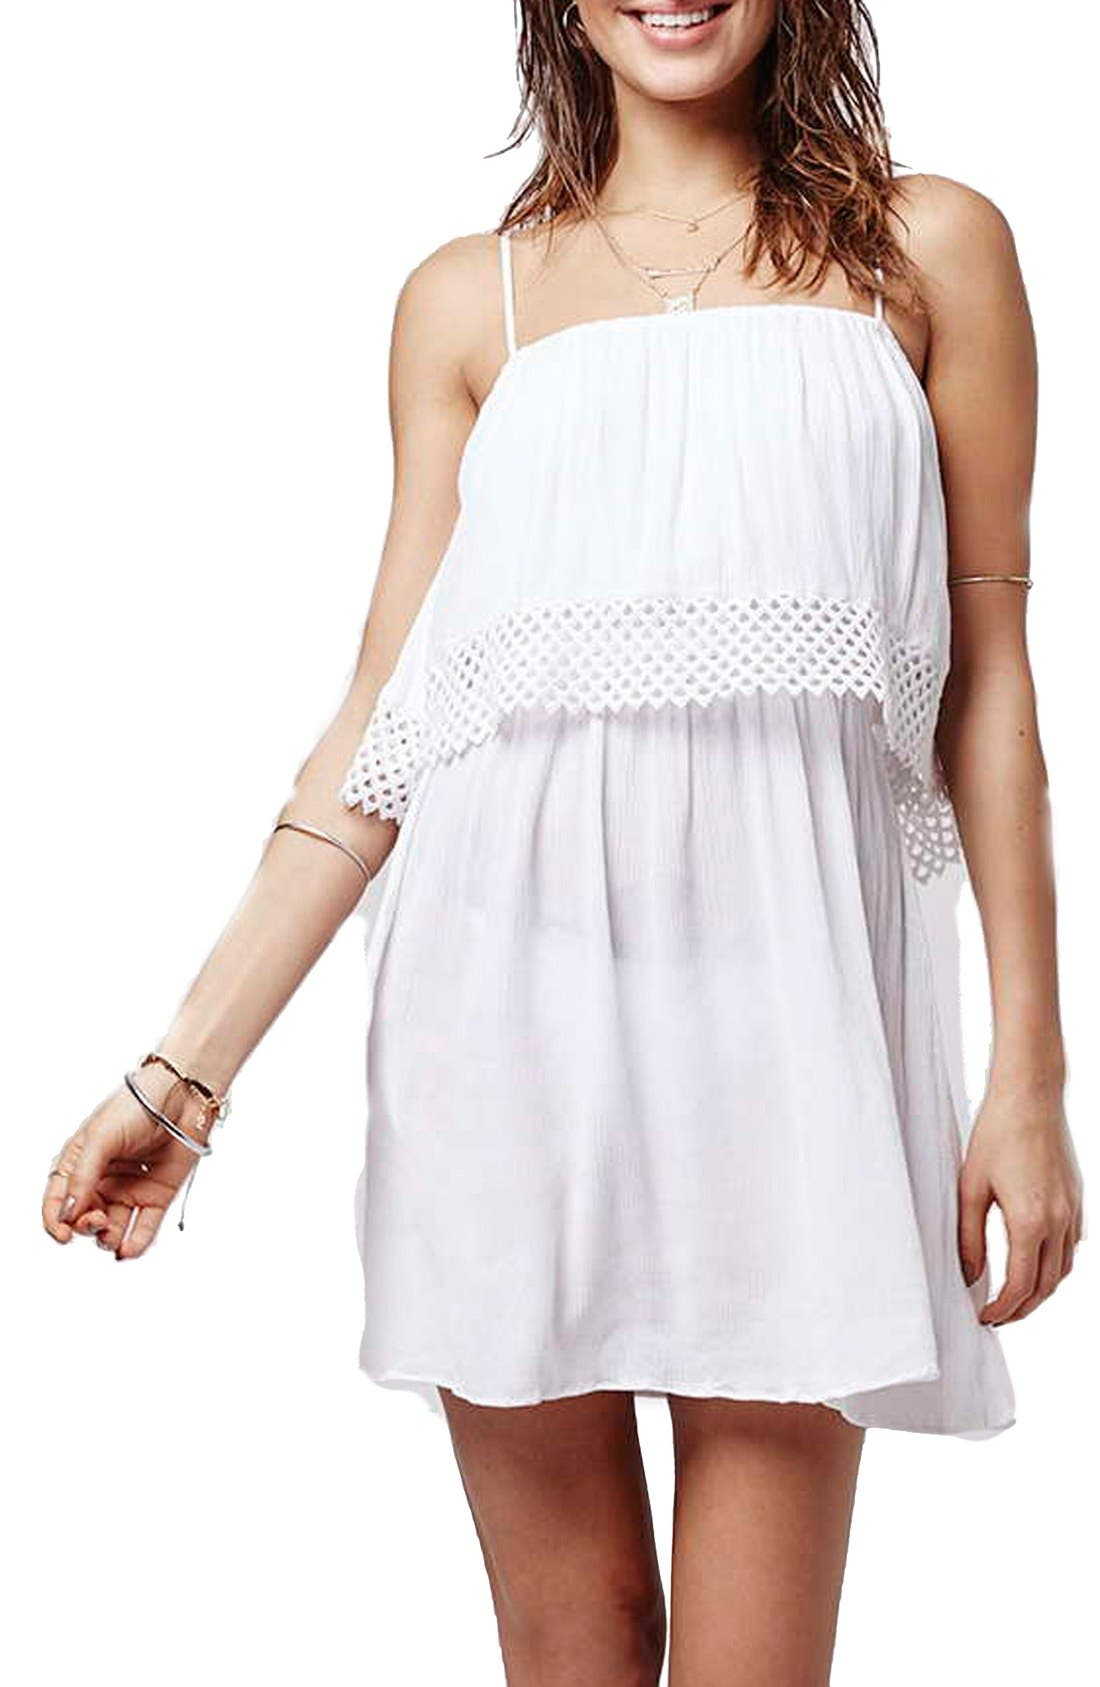 Alternate Image 1 Selected - Topshop Crochet Overlay Cover-Up Sundress